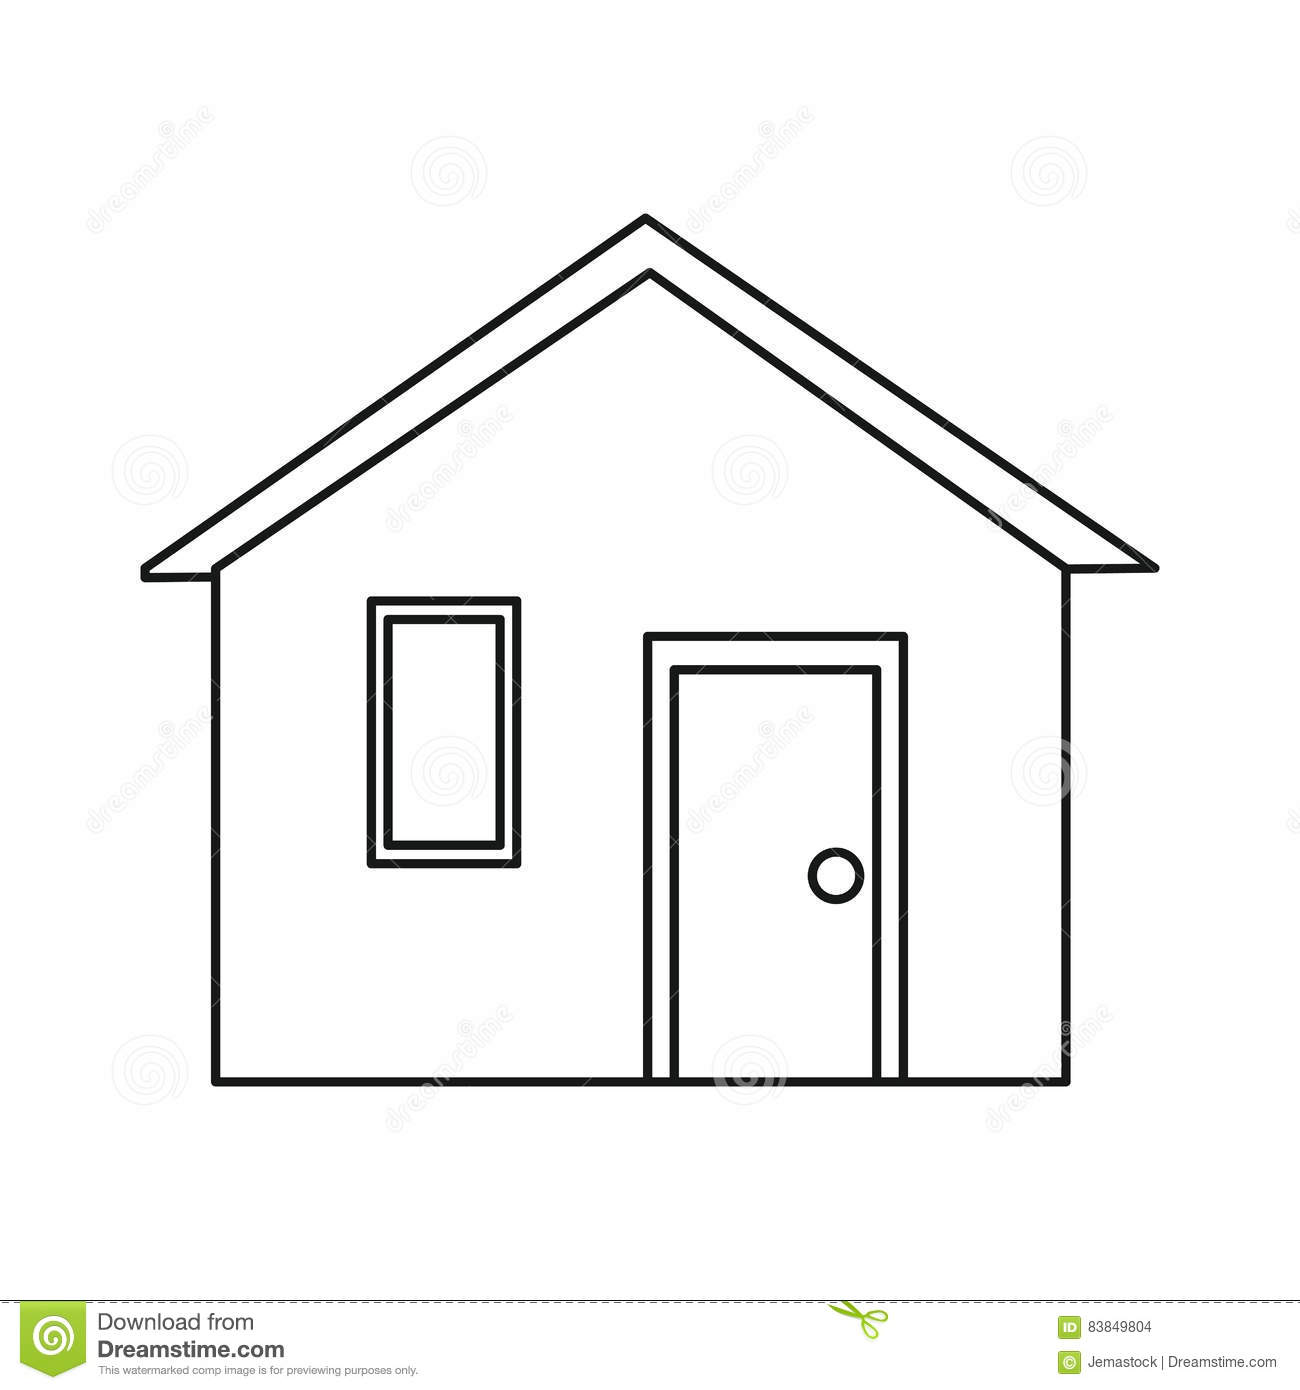 House outline picture - Royalty Free Vector Download House Family Front View Outline